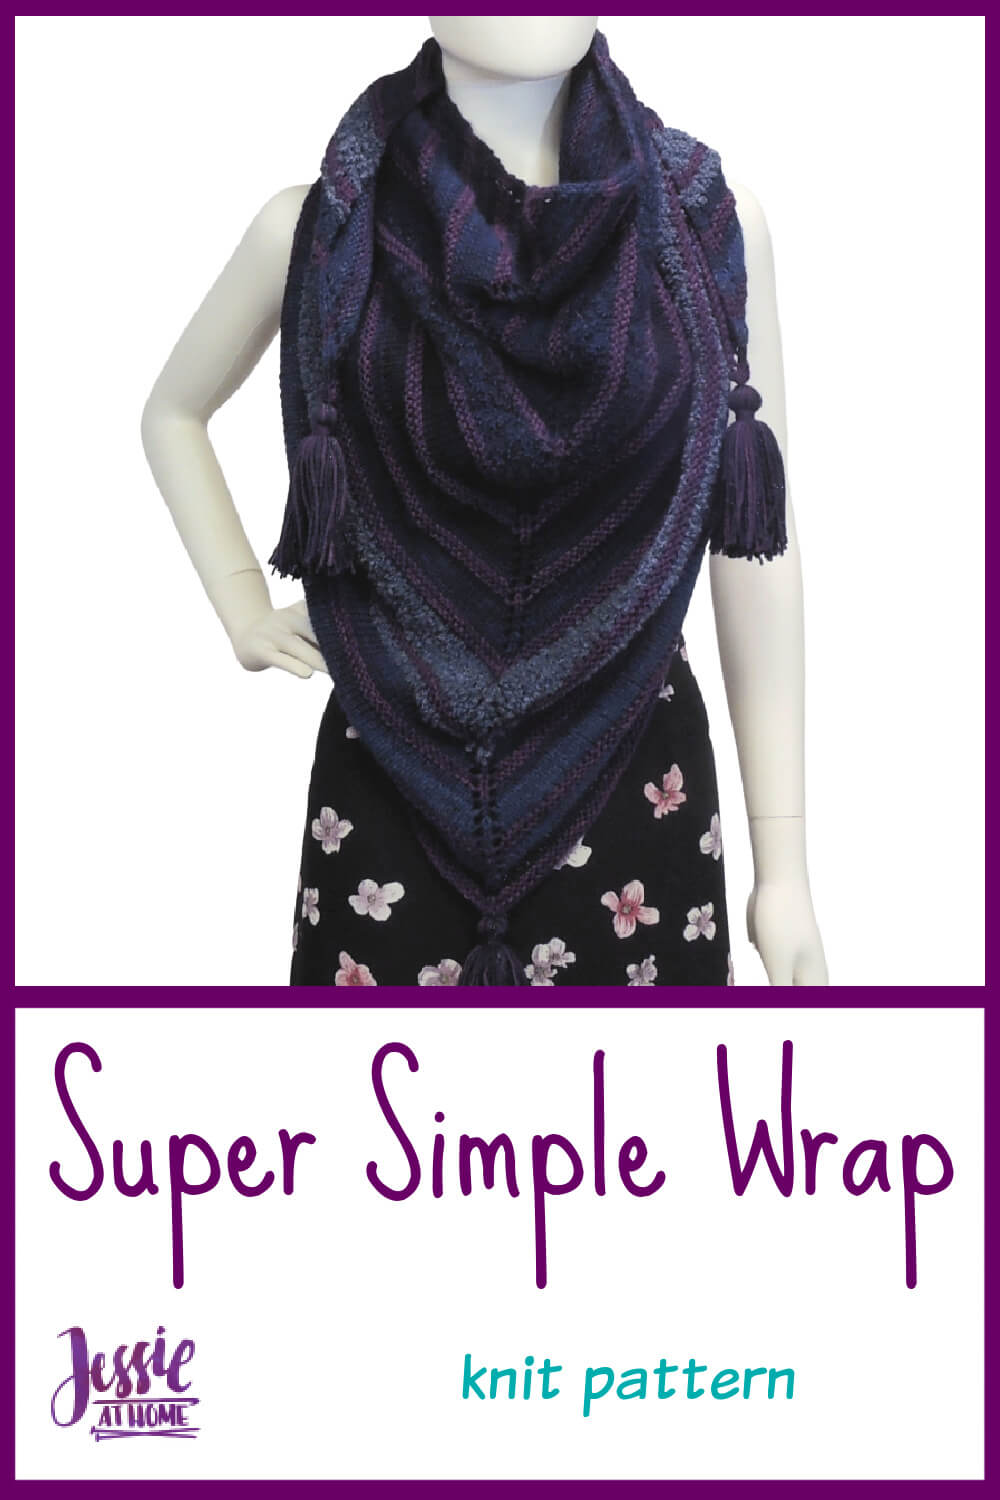 Super Simple Knit Shawl - knit, purl, yarn over, done